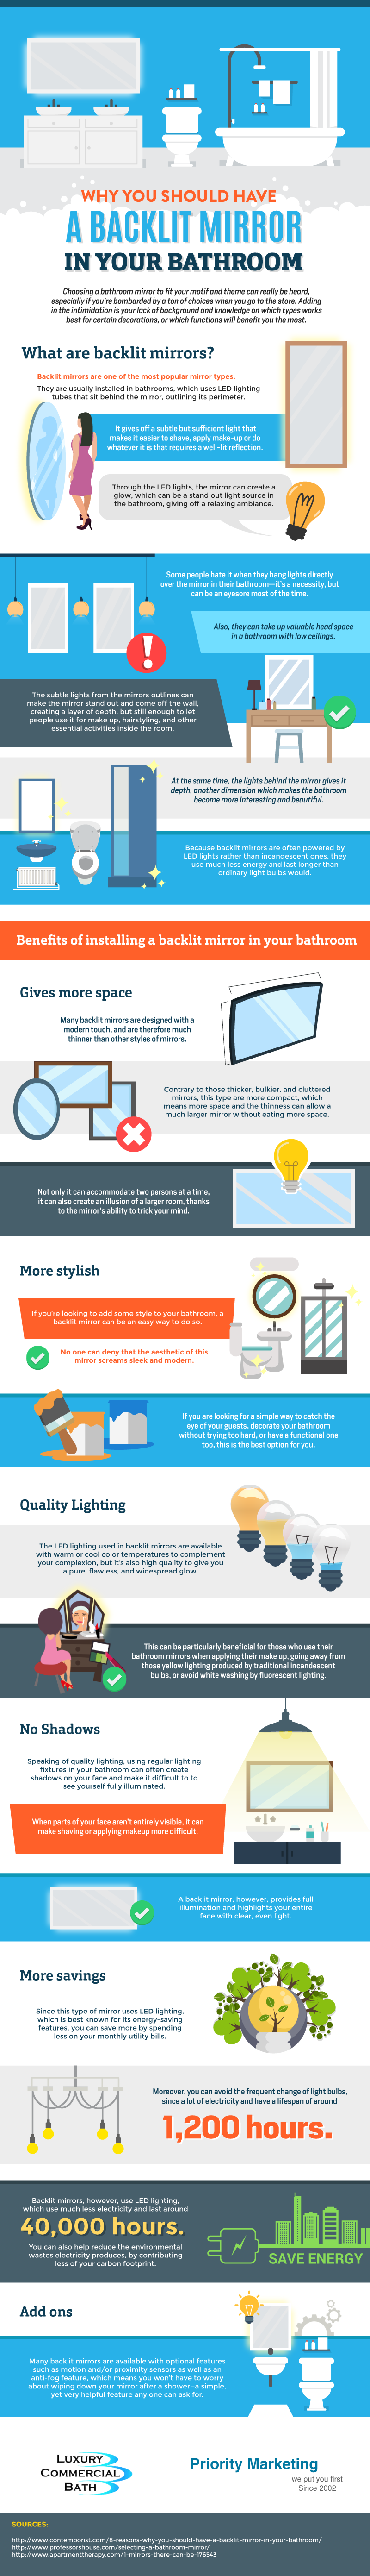 Why You Should Have A Backlit Mirror In Your Bathroom Infographic